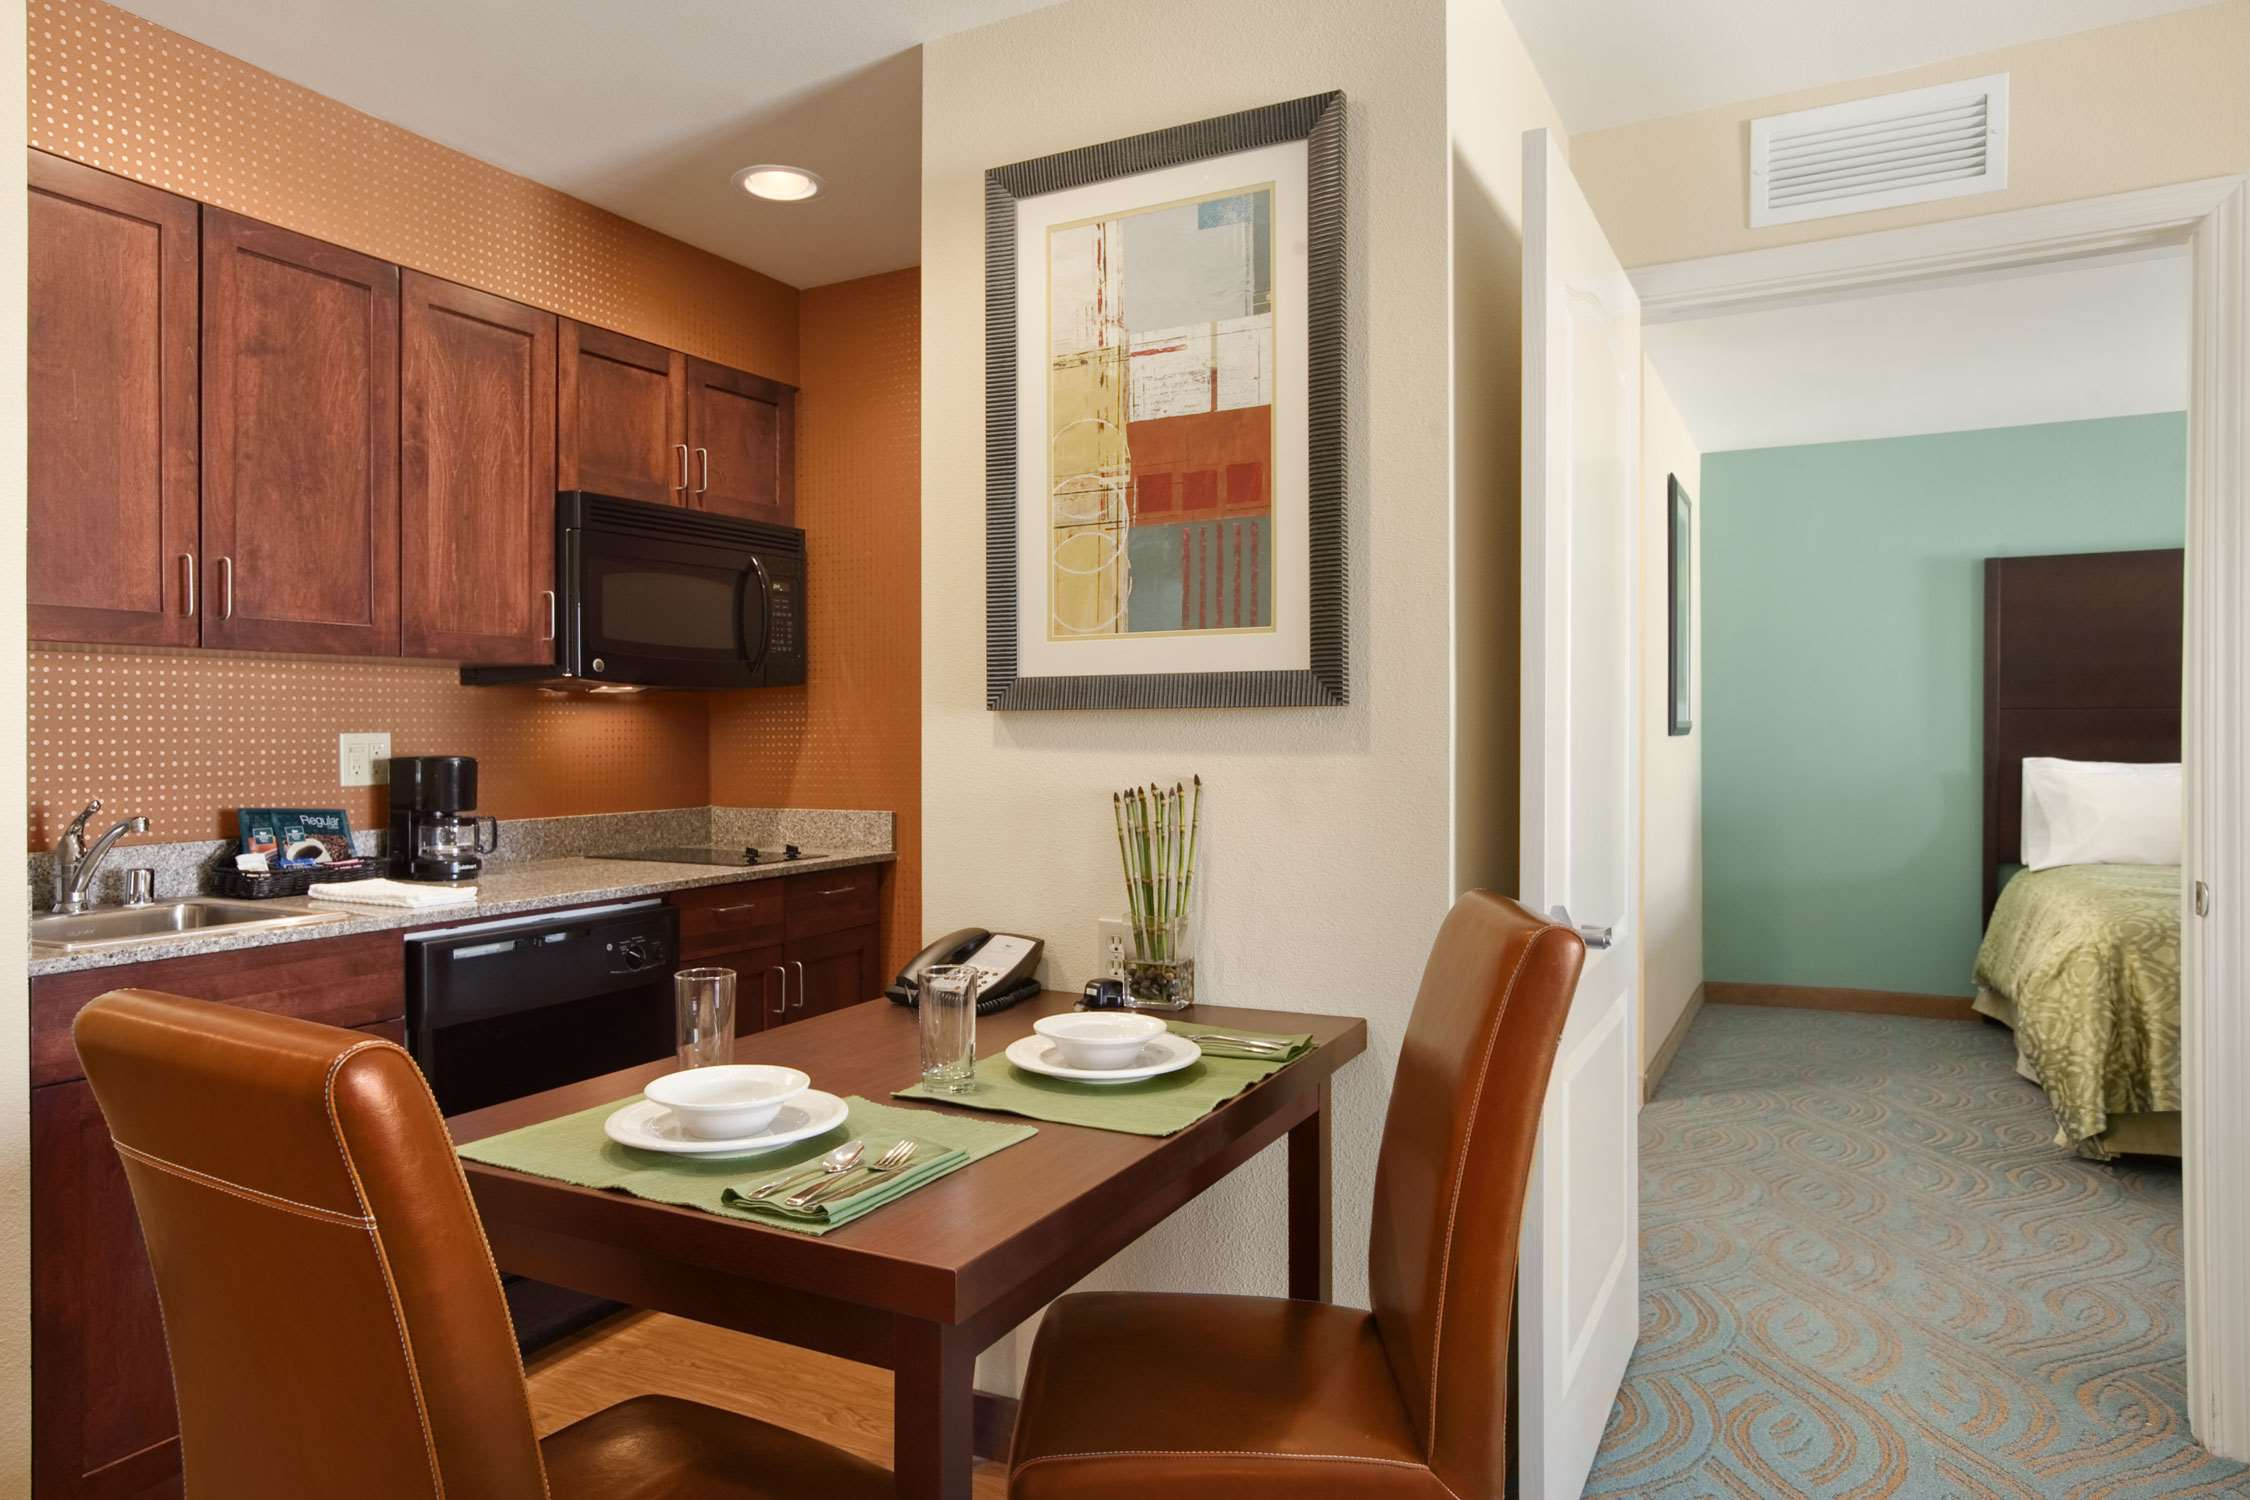 Homewood Suites by Hilton Palm Desert image 19